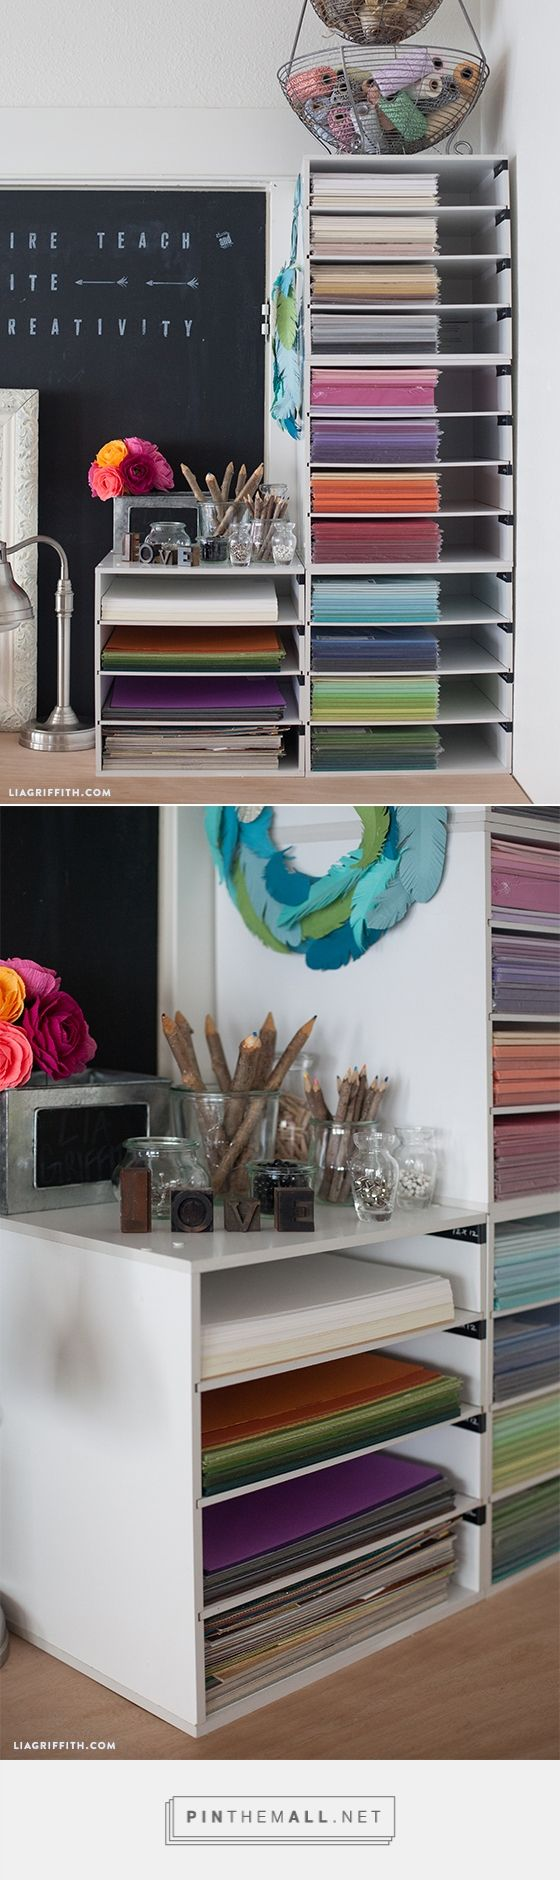 Scrapbook paper organization ideas - Organizing My Crafting Paper More Ideas And Inspiration At Www Liagriffith Com